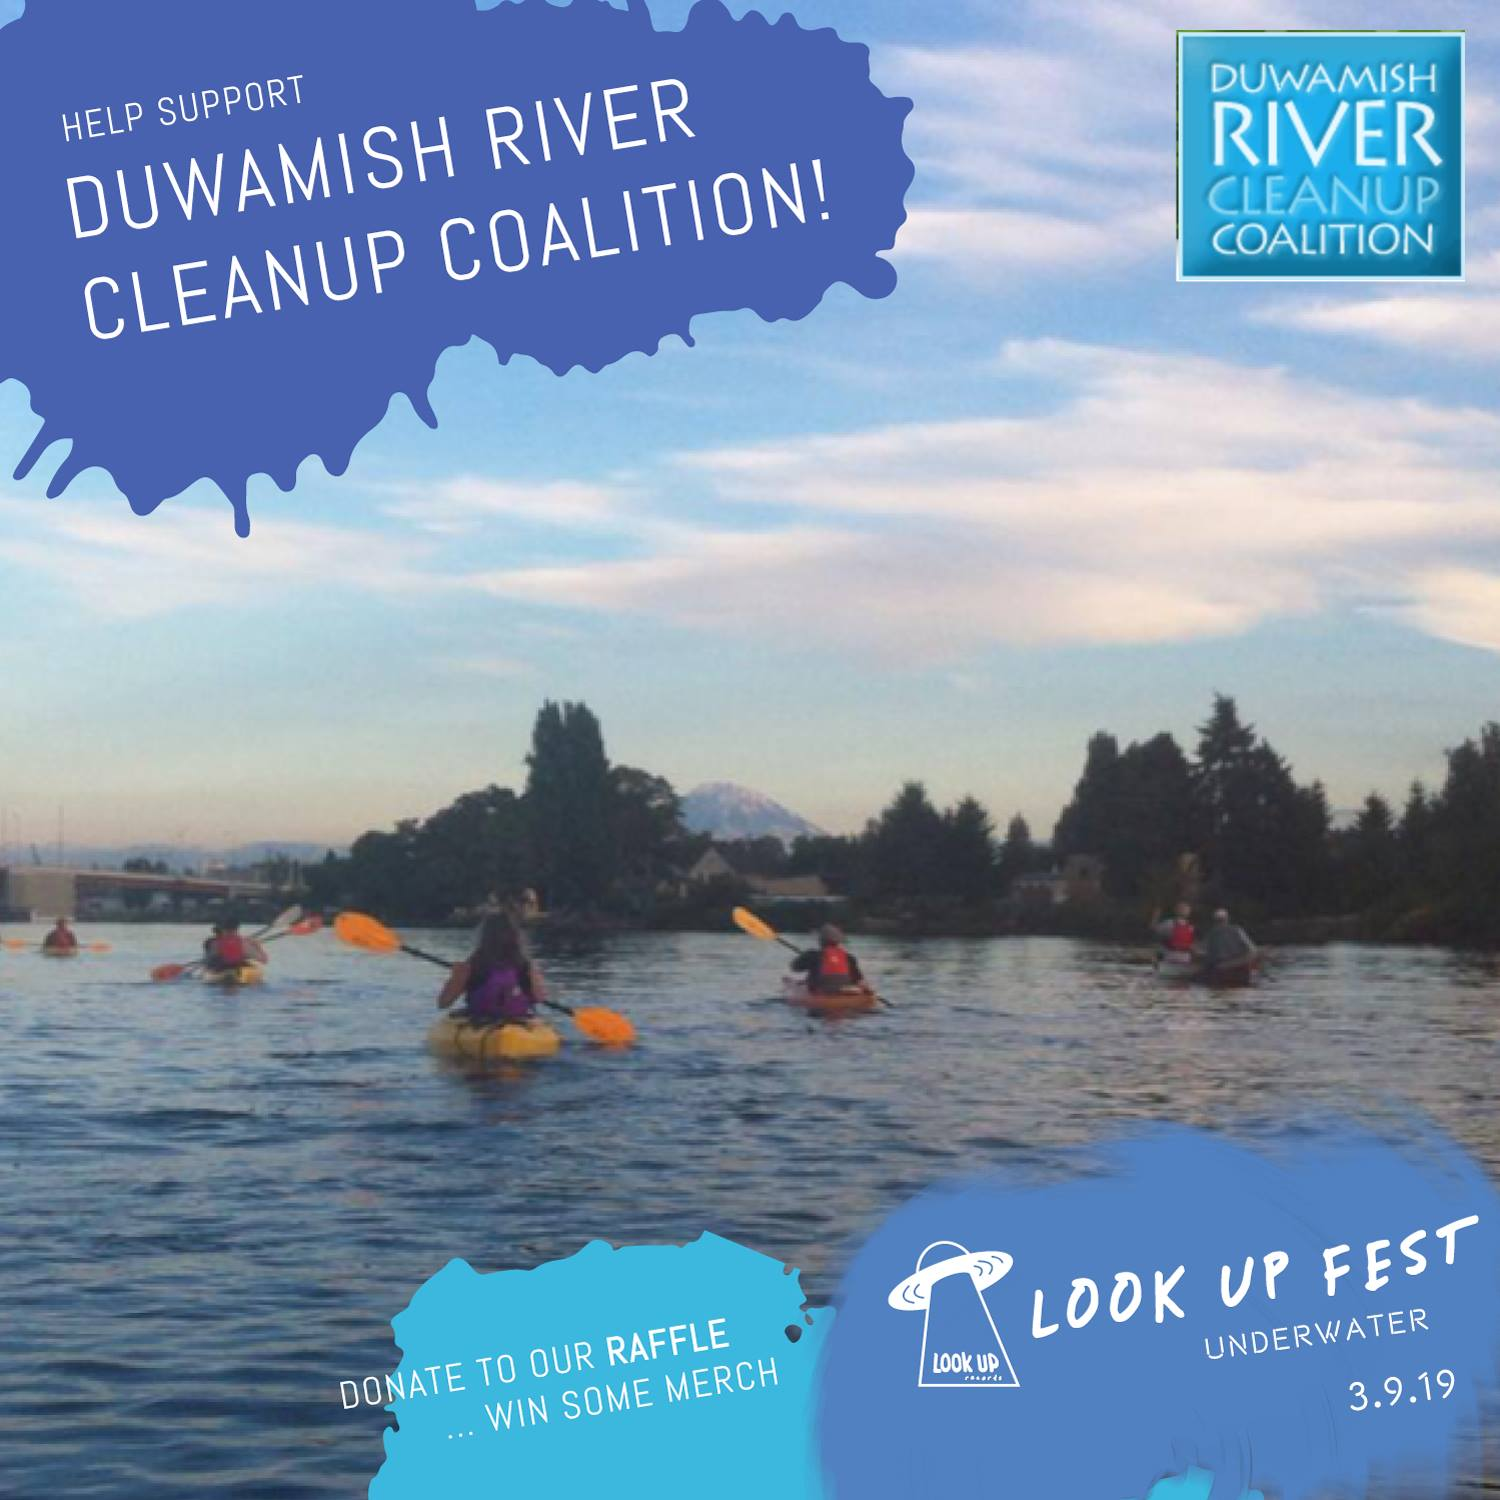 DUWAMISH RIVER CLEANUP COALITION - For this event, we will be raise donations for Duwamish River Cleanup Coalition/TAG, a cause dedicated to addressing the impact of urban development on our local environment. To help support, donate to our raffle, which will feature awesome merch from all bands involved!